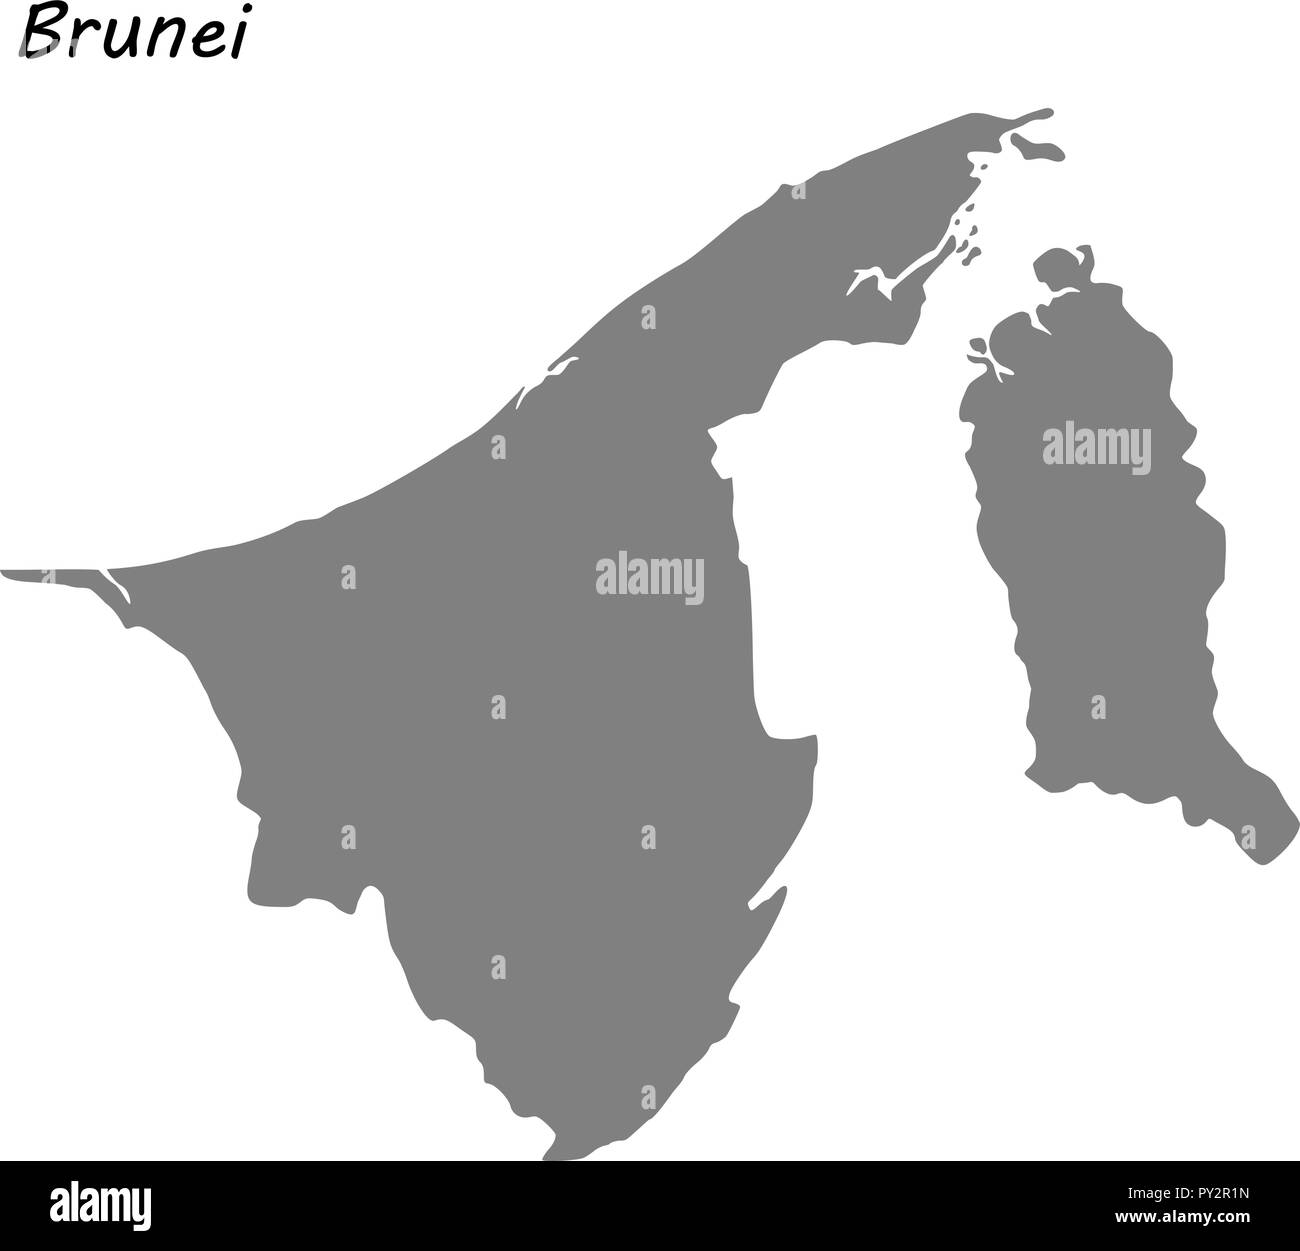 High quality map of Brunei . Vector illustration - Stock Image